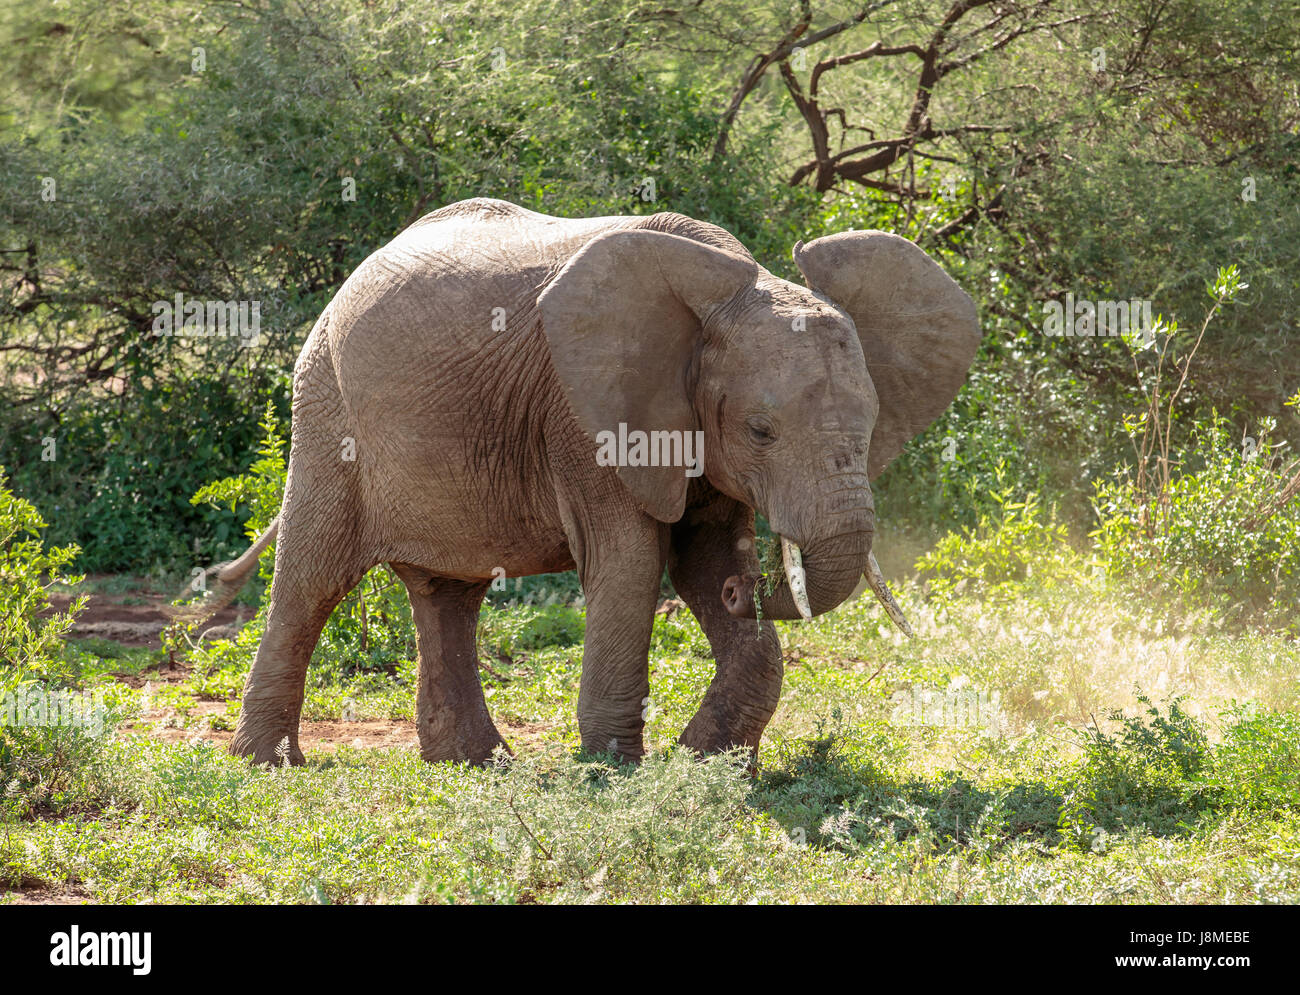 An African Elephant sub-adult using its leg to dislodge tough grass while grazing - Stock Image